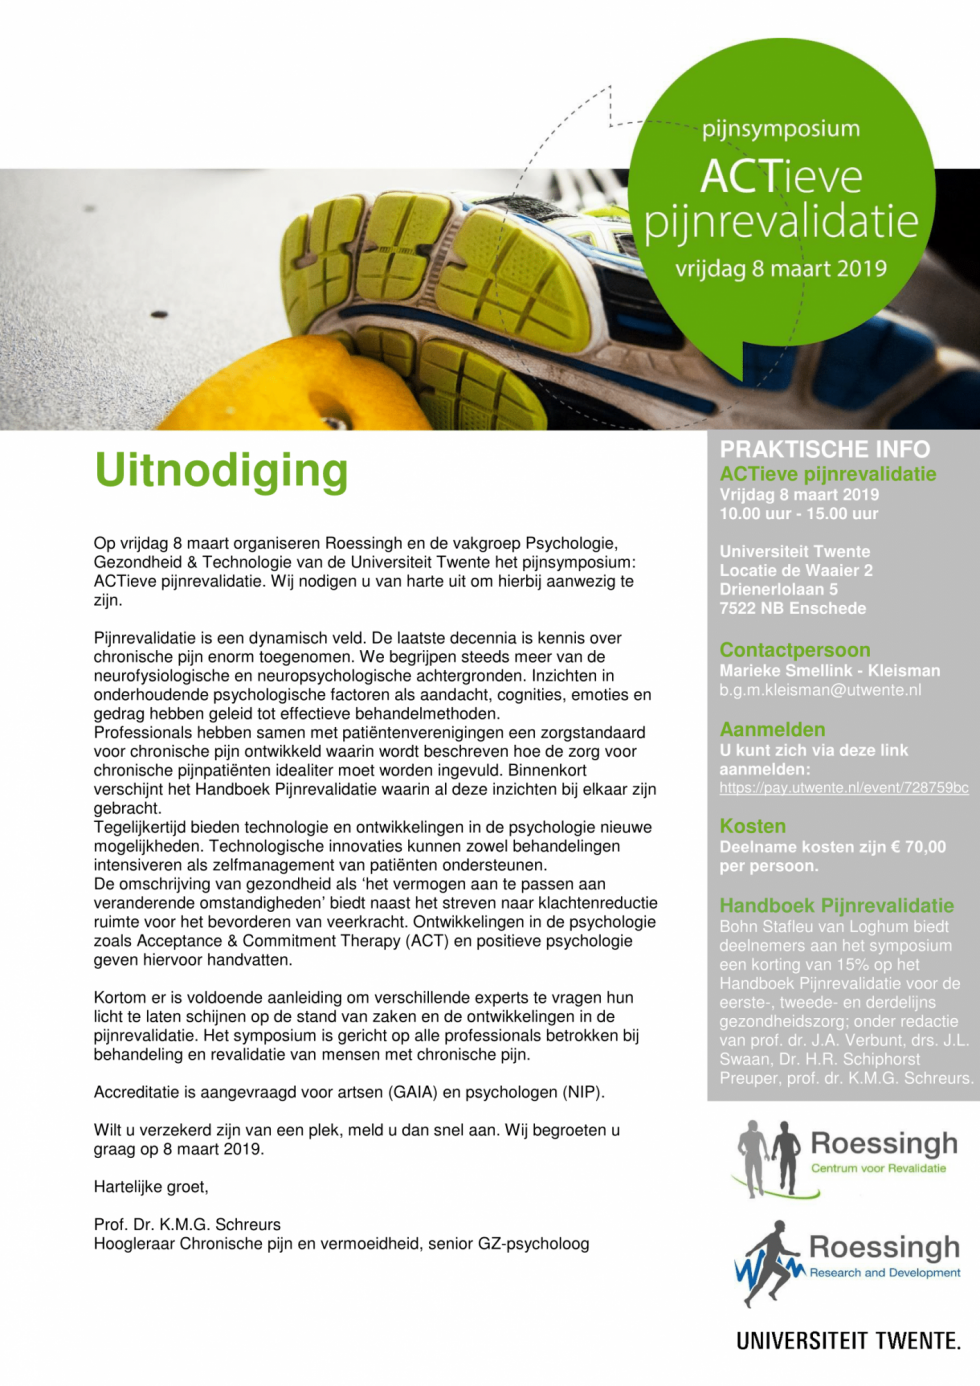 Download de uitnodiging